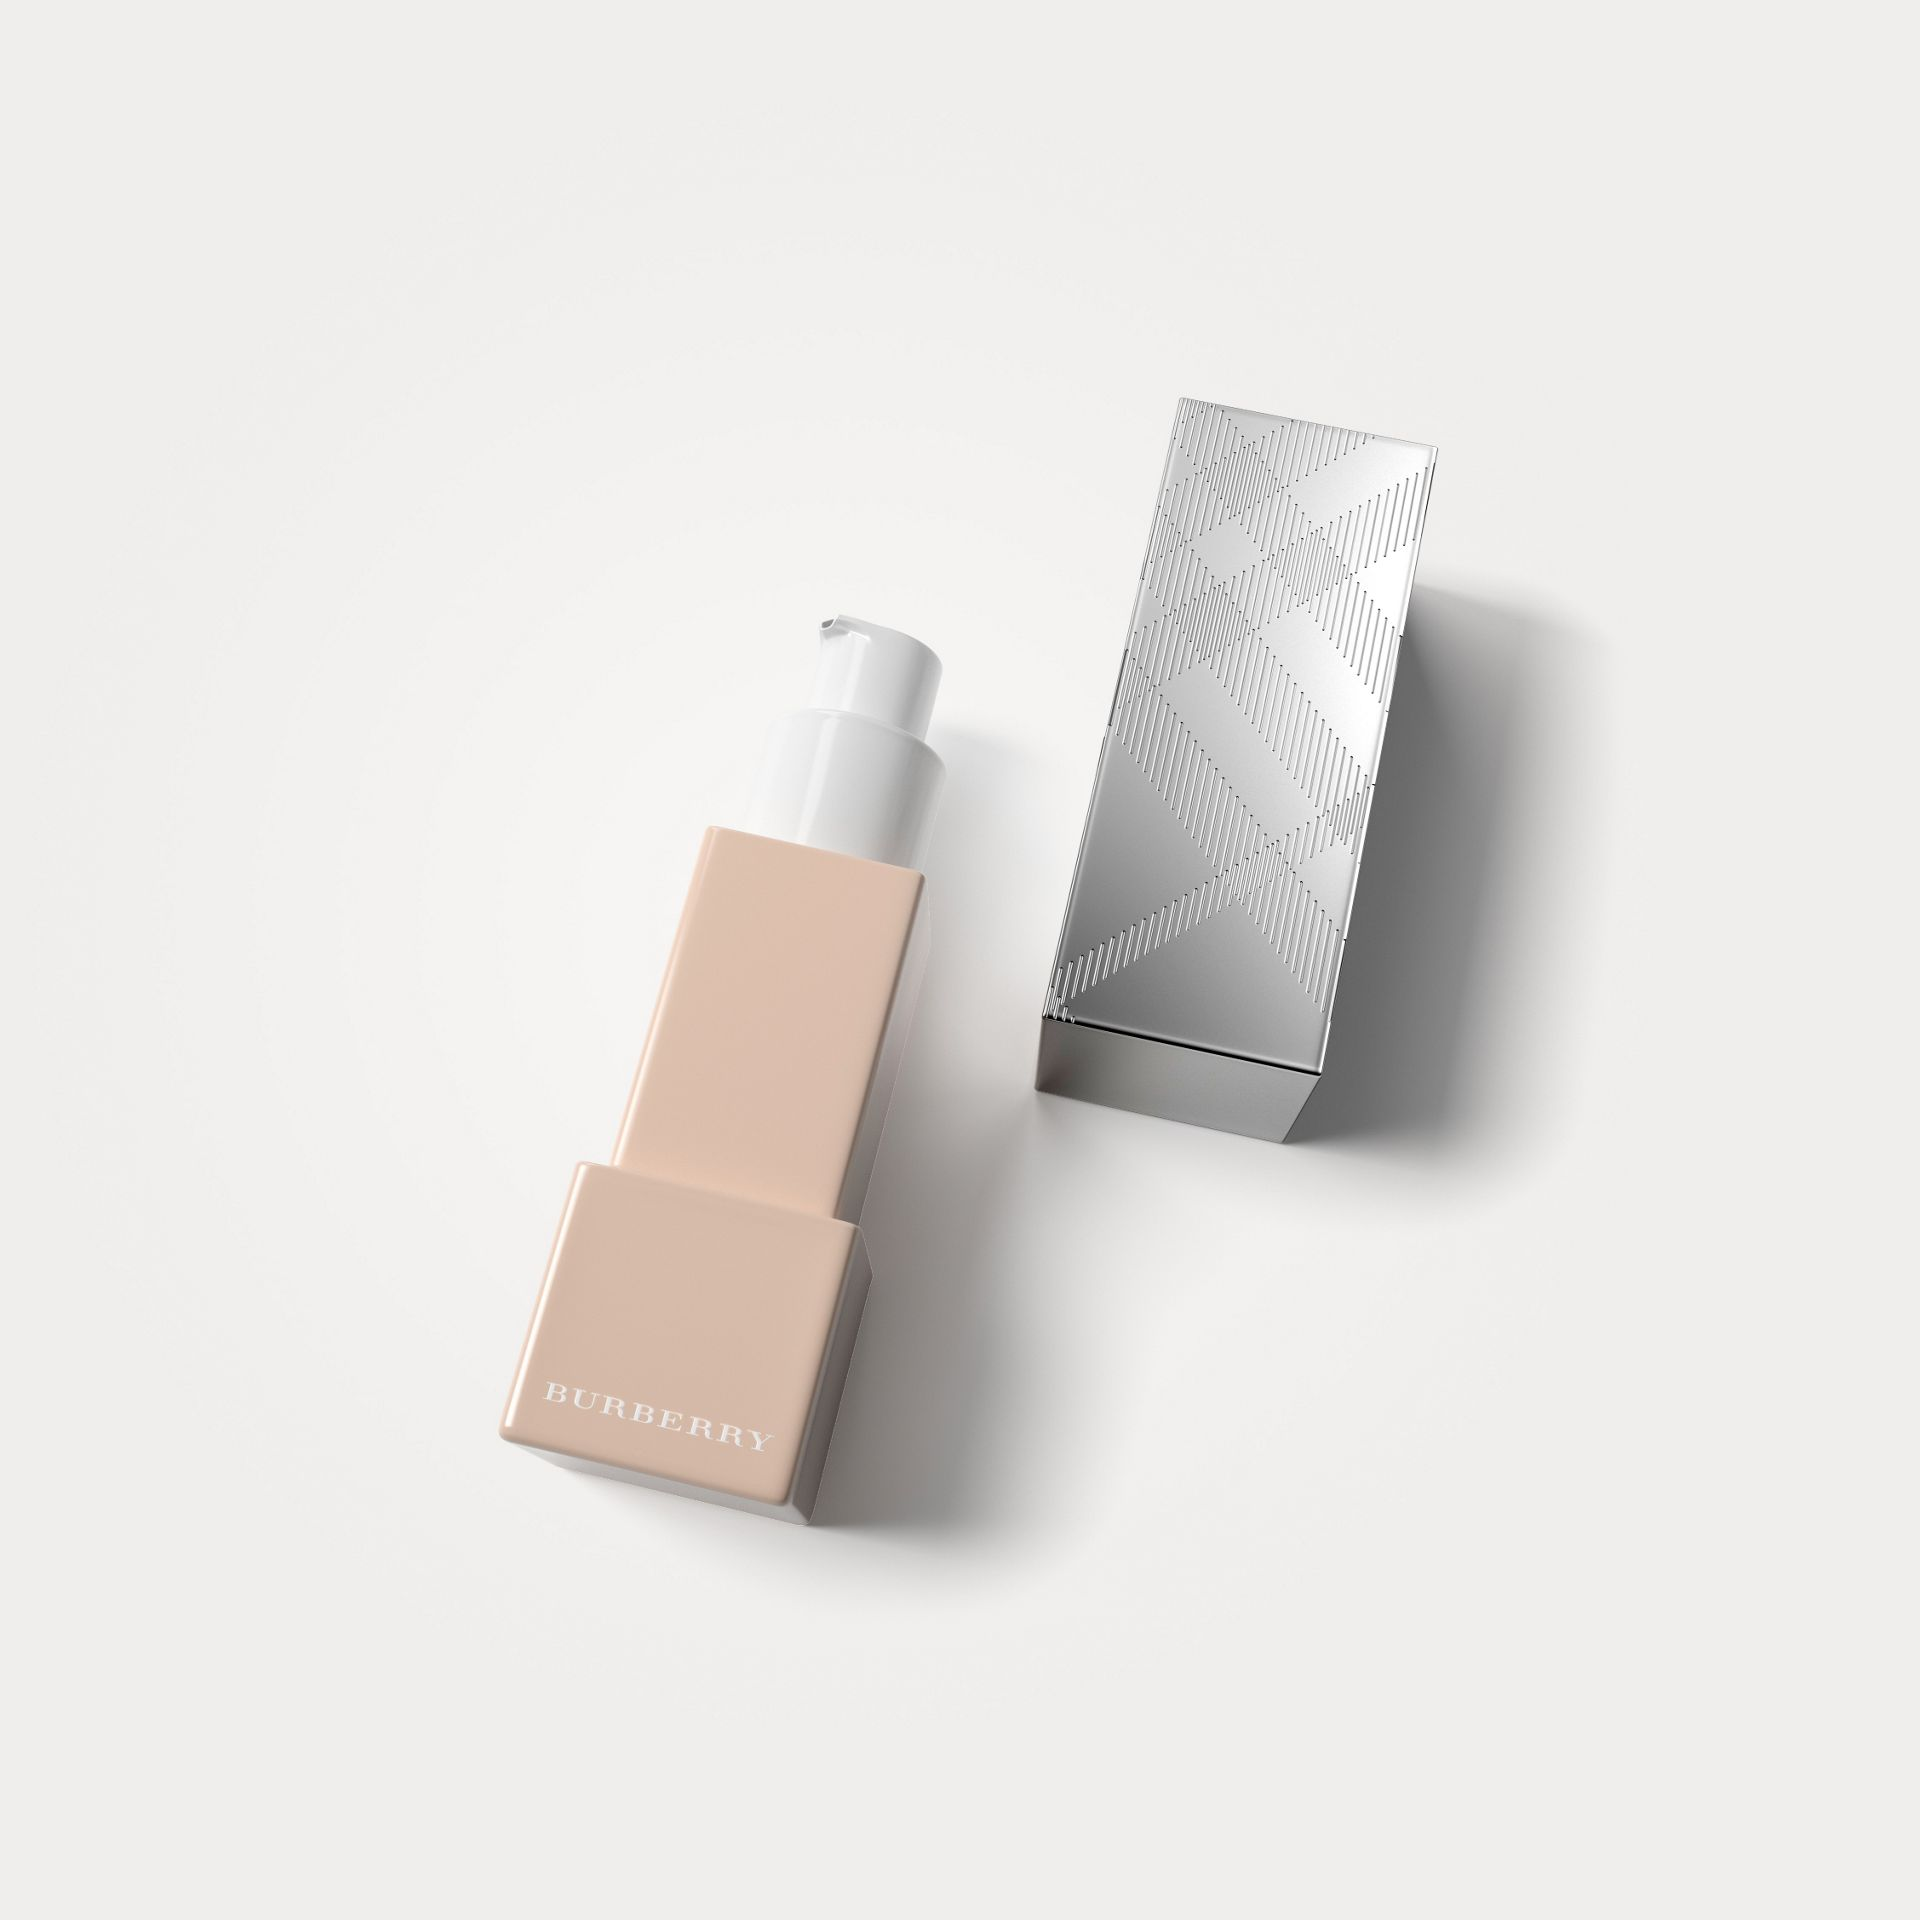 Porcelain 11 Bright Glow Foundation SPF 30 PA+++ – Porcelain No.11 - gallery image 1